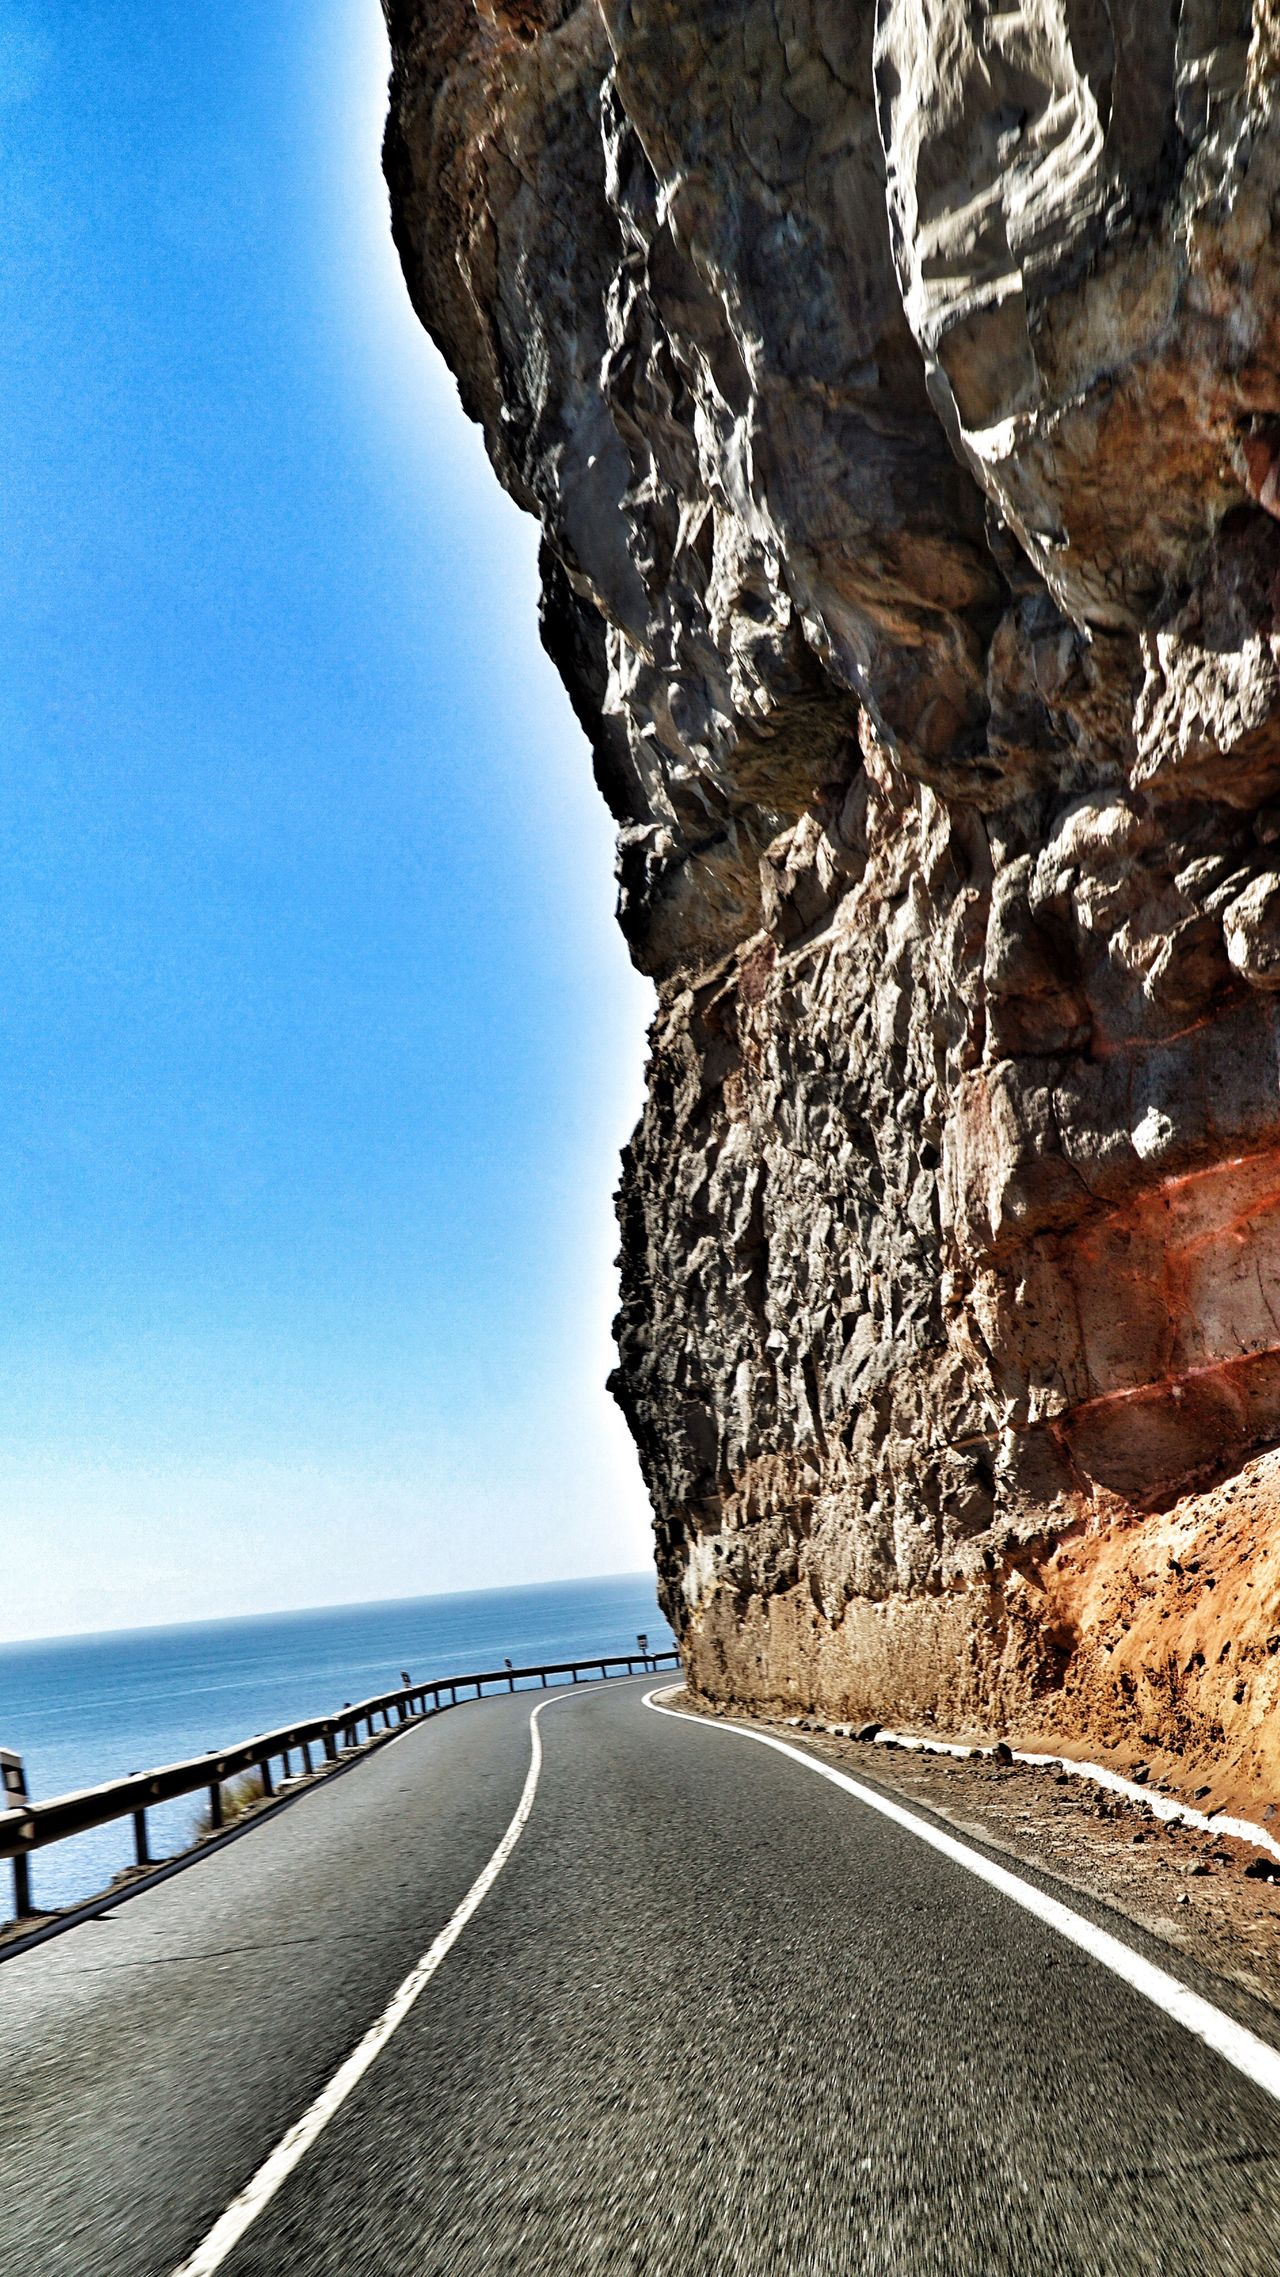 Road The Way Forward Road Transportation Clear Sky Road Marking Blue Tranquil Scene Sea Copy Space Rock - Object Mountain Tranquility Surface Level Day Rocky Mountains Rock Formation Water Scenics Beauty In Nature Outdoors